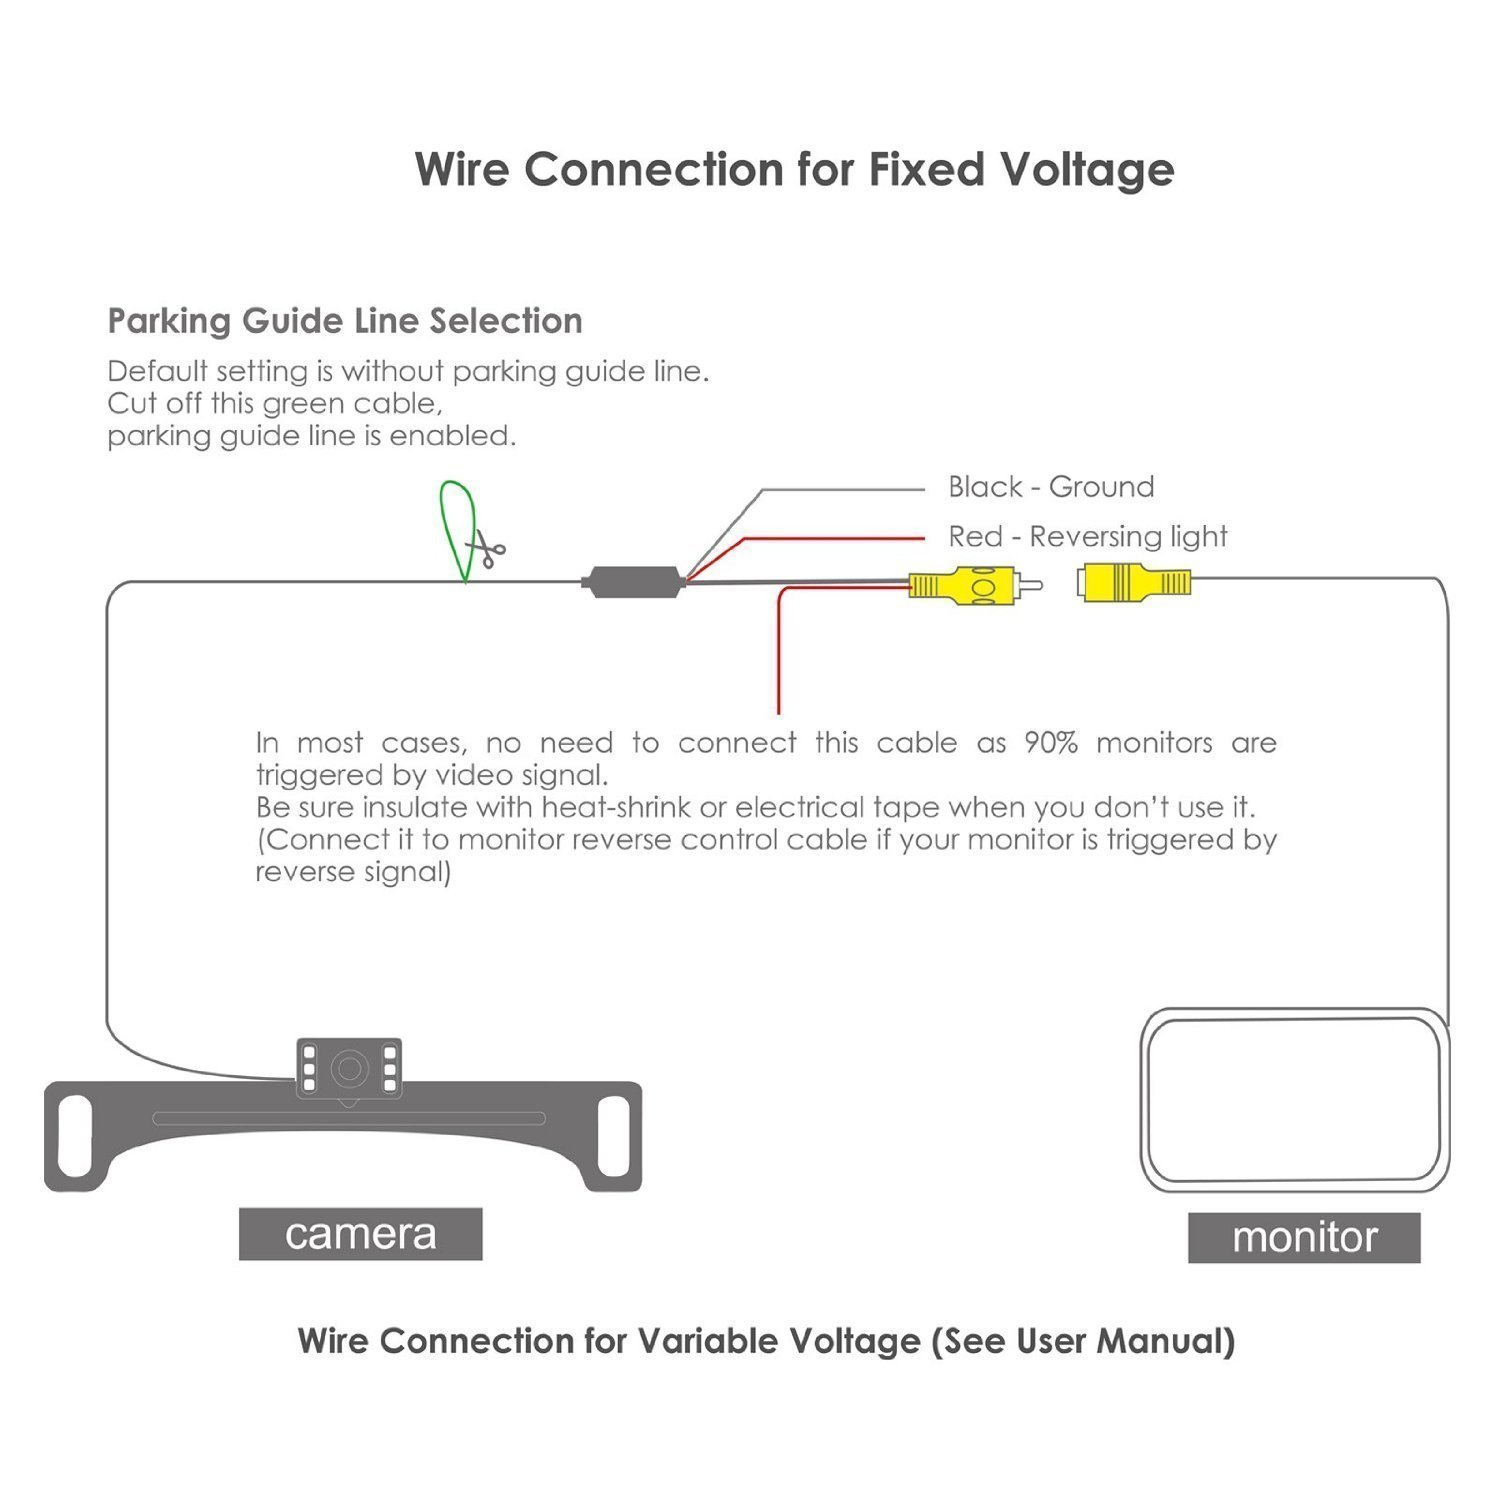 Wire Diagram Backup Camera Parking Lines Center Koolertron Wiring Auto Vox Cam 1 Color Hd Waterproof Night Vision Rh Walmart Com Connection Voyager